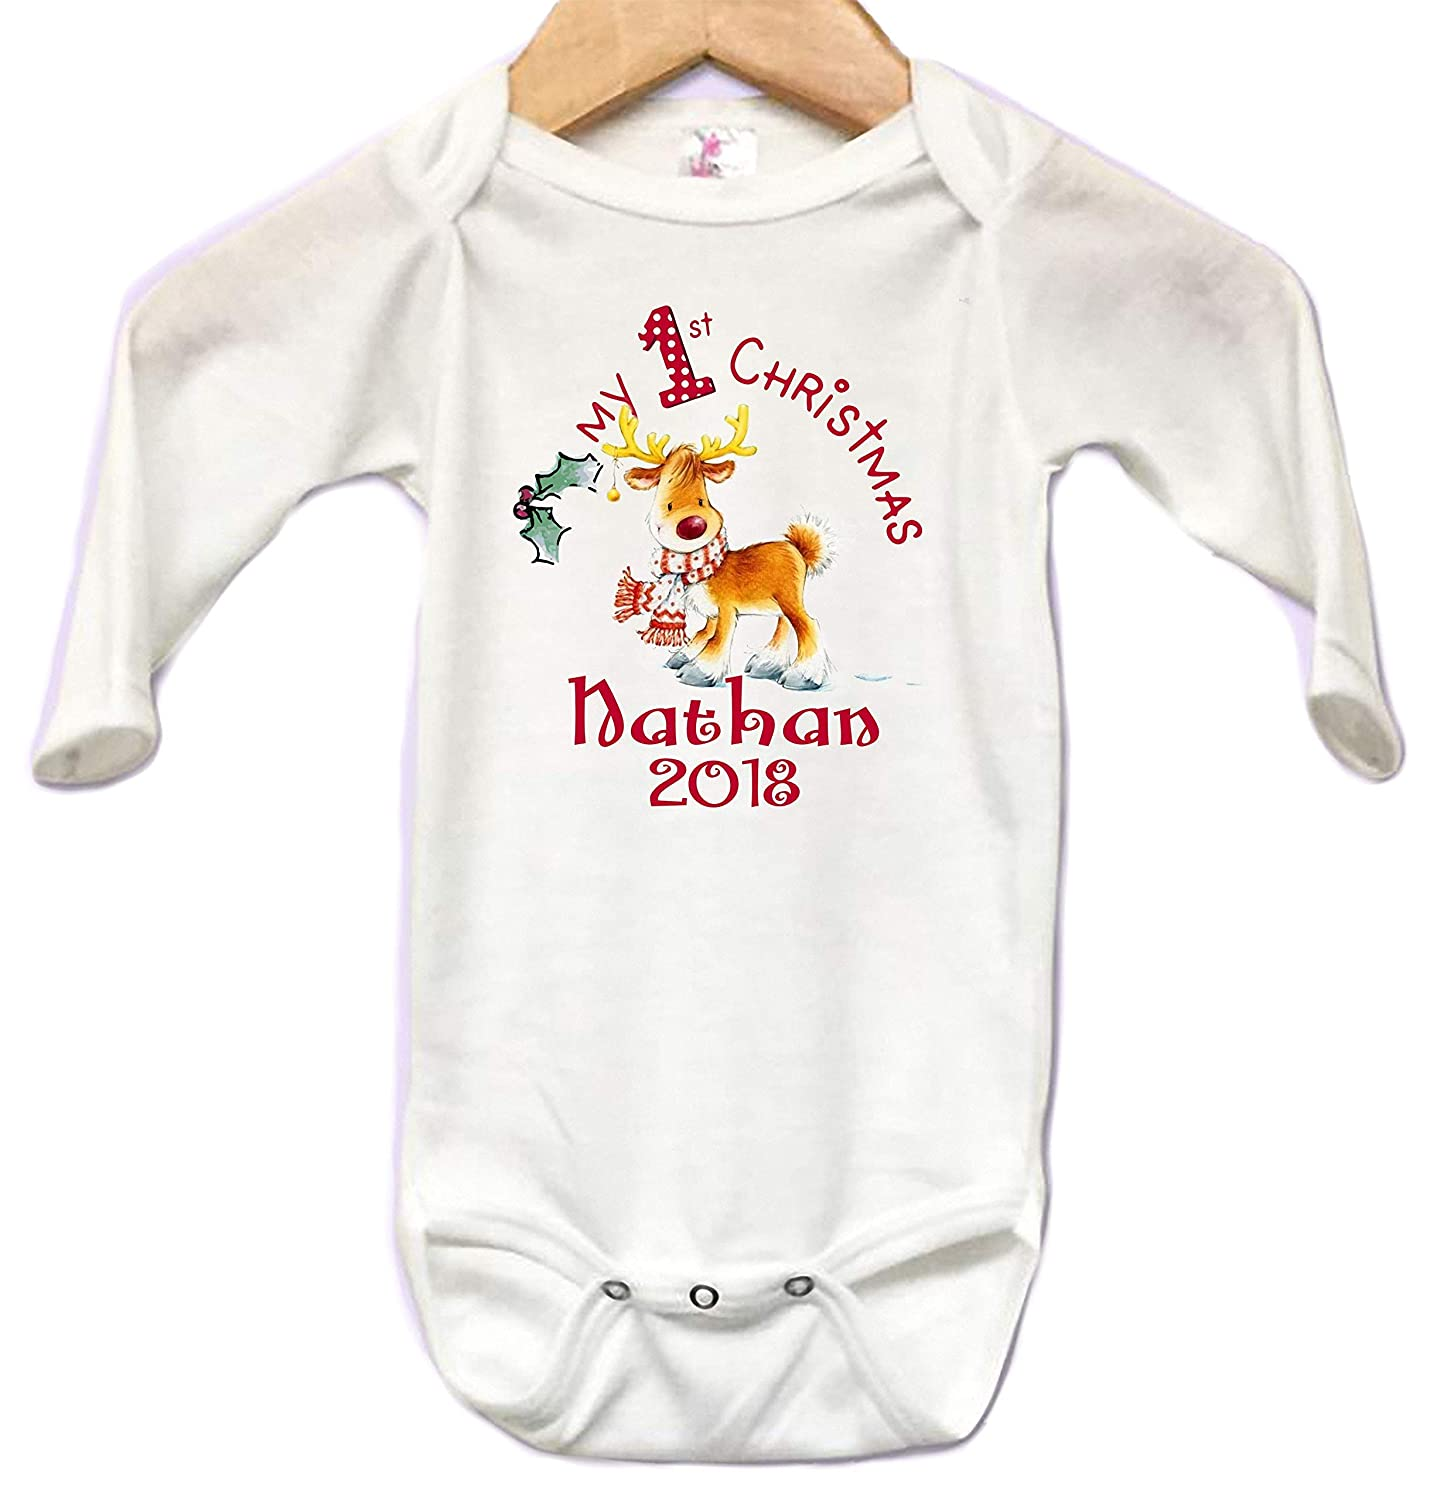 Onesie Long Sleeve Body Suit Babys First Christmas Reindeer Scarf Personalized NAME Custom 0 to 3 mos or 3 to 6 months or 6 to 12months for Boys or Girls